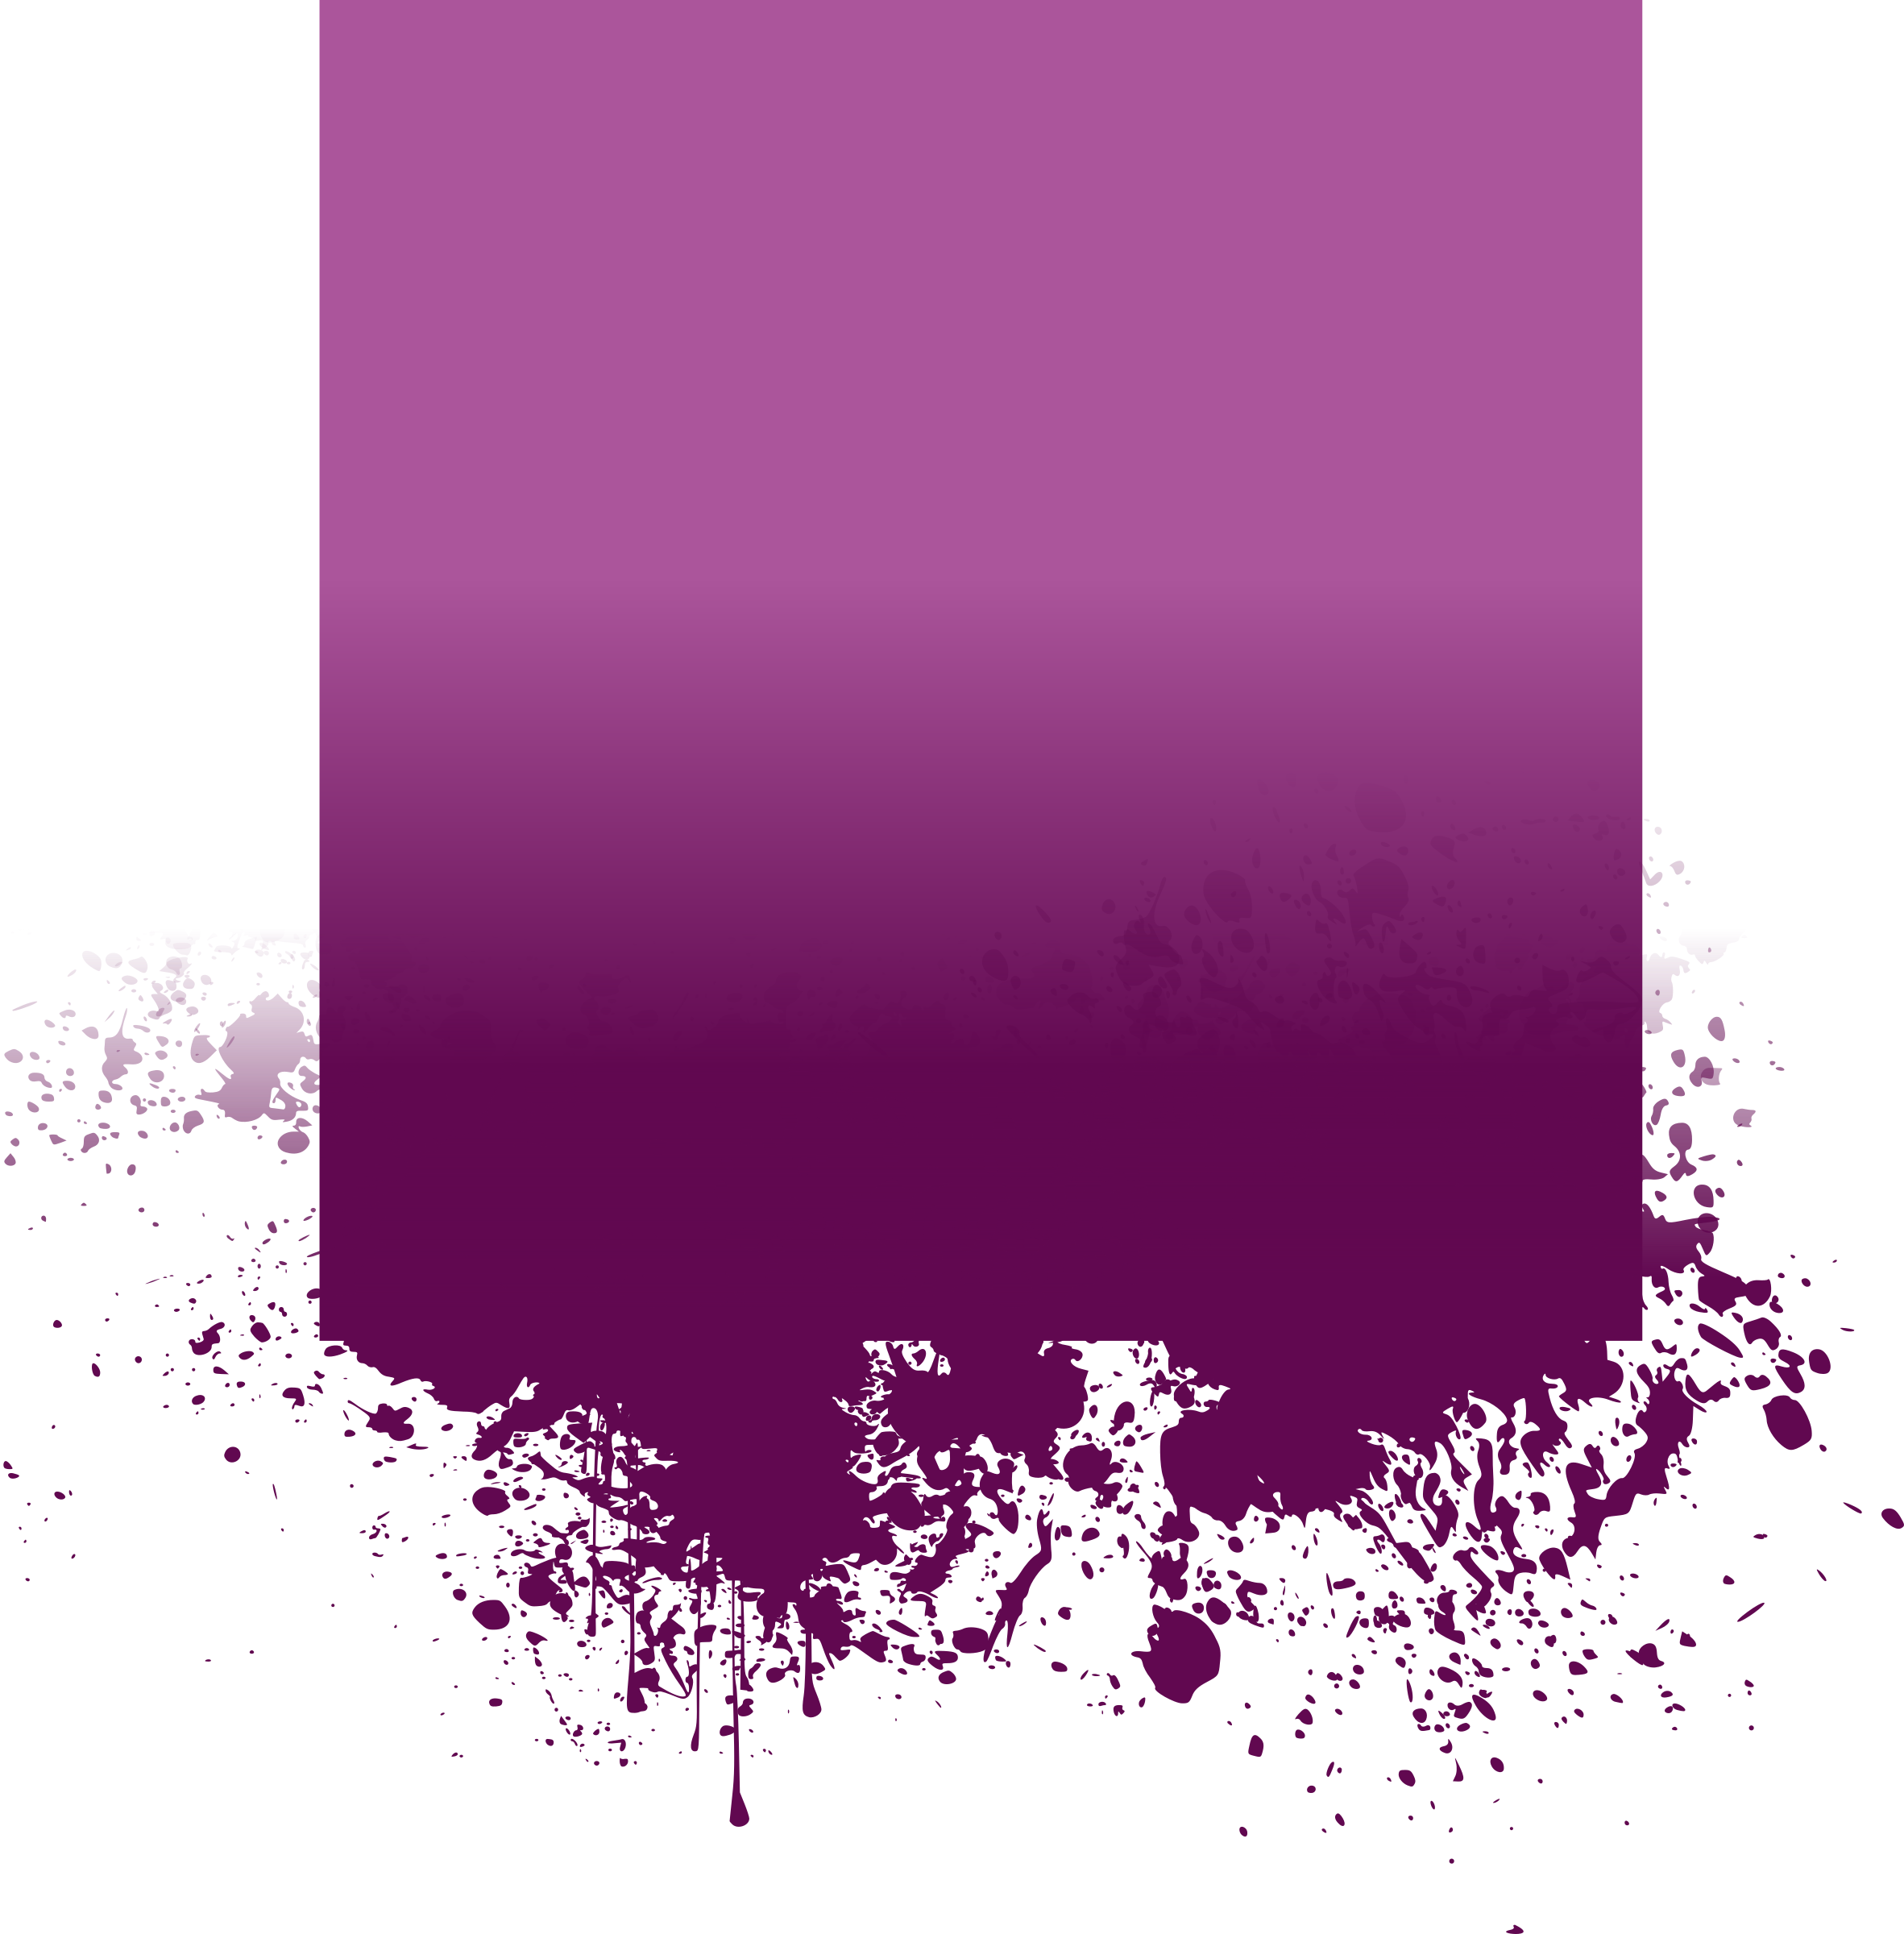 Dbb purple ink icons. Background images png banner